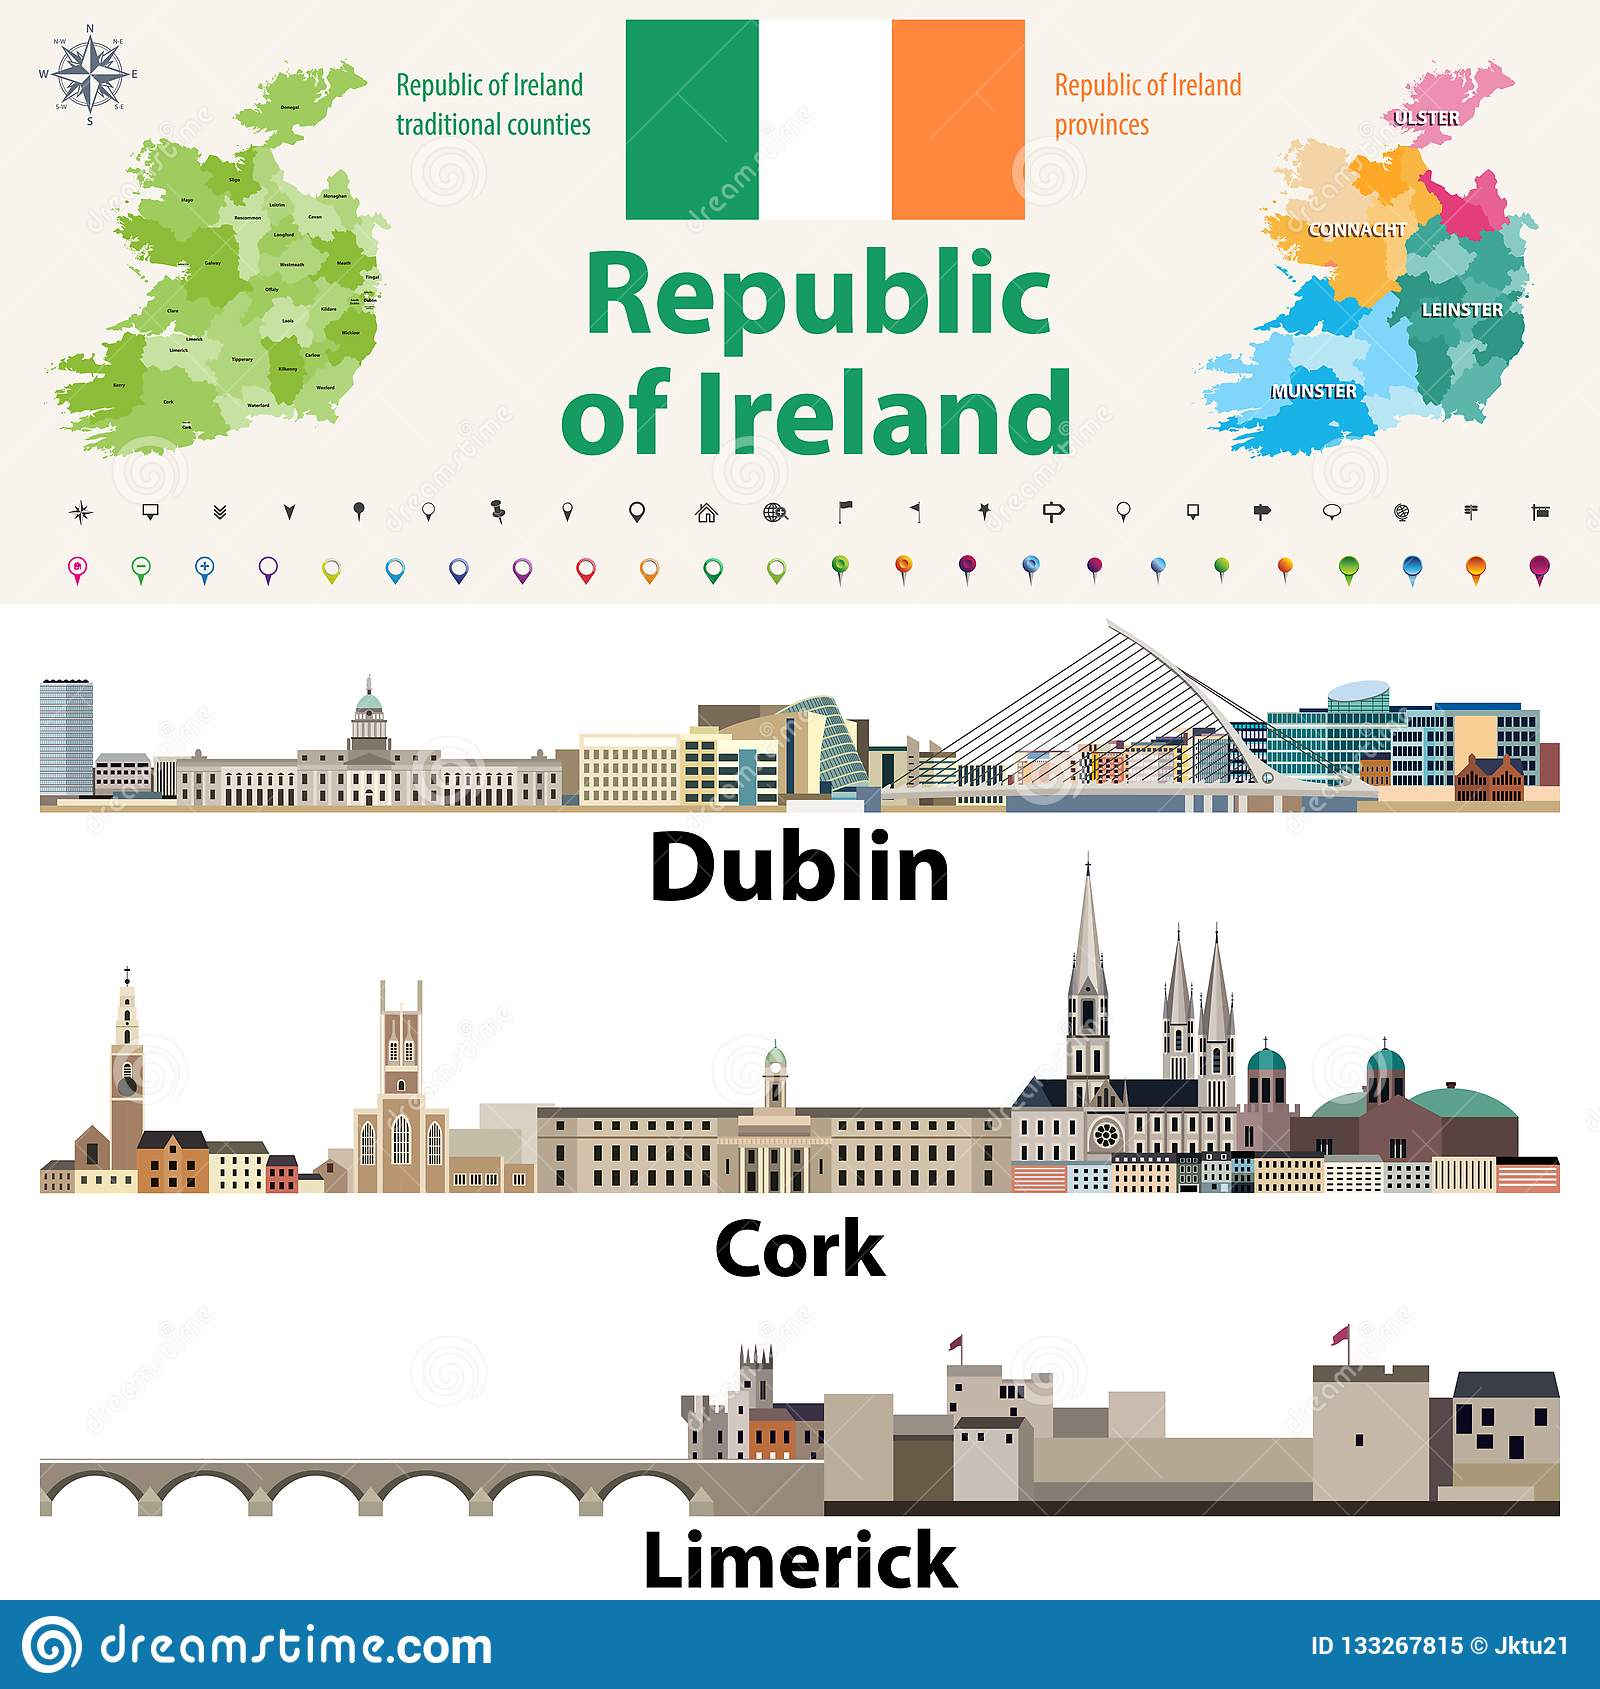 Map Of Ireland With Major Cities.Republic Of Ireland Traditional Countries And Provinces Map And